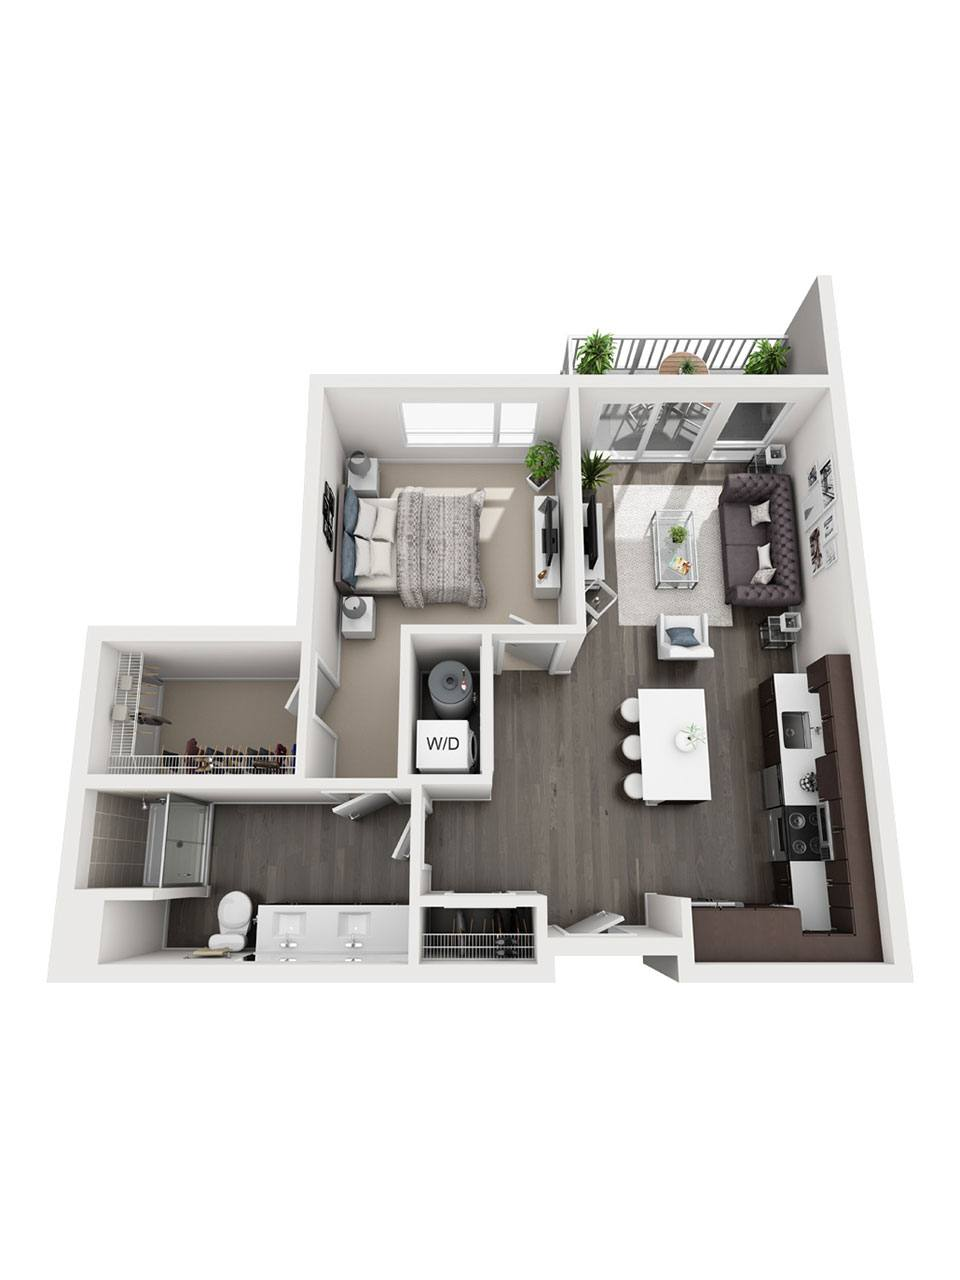 Plan 1 bedroom – A4 | 1 Bath